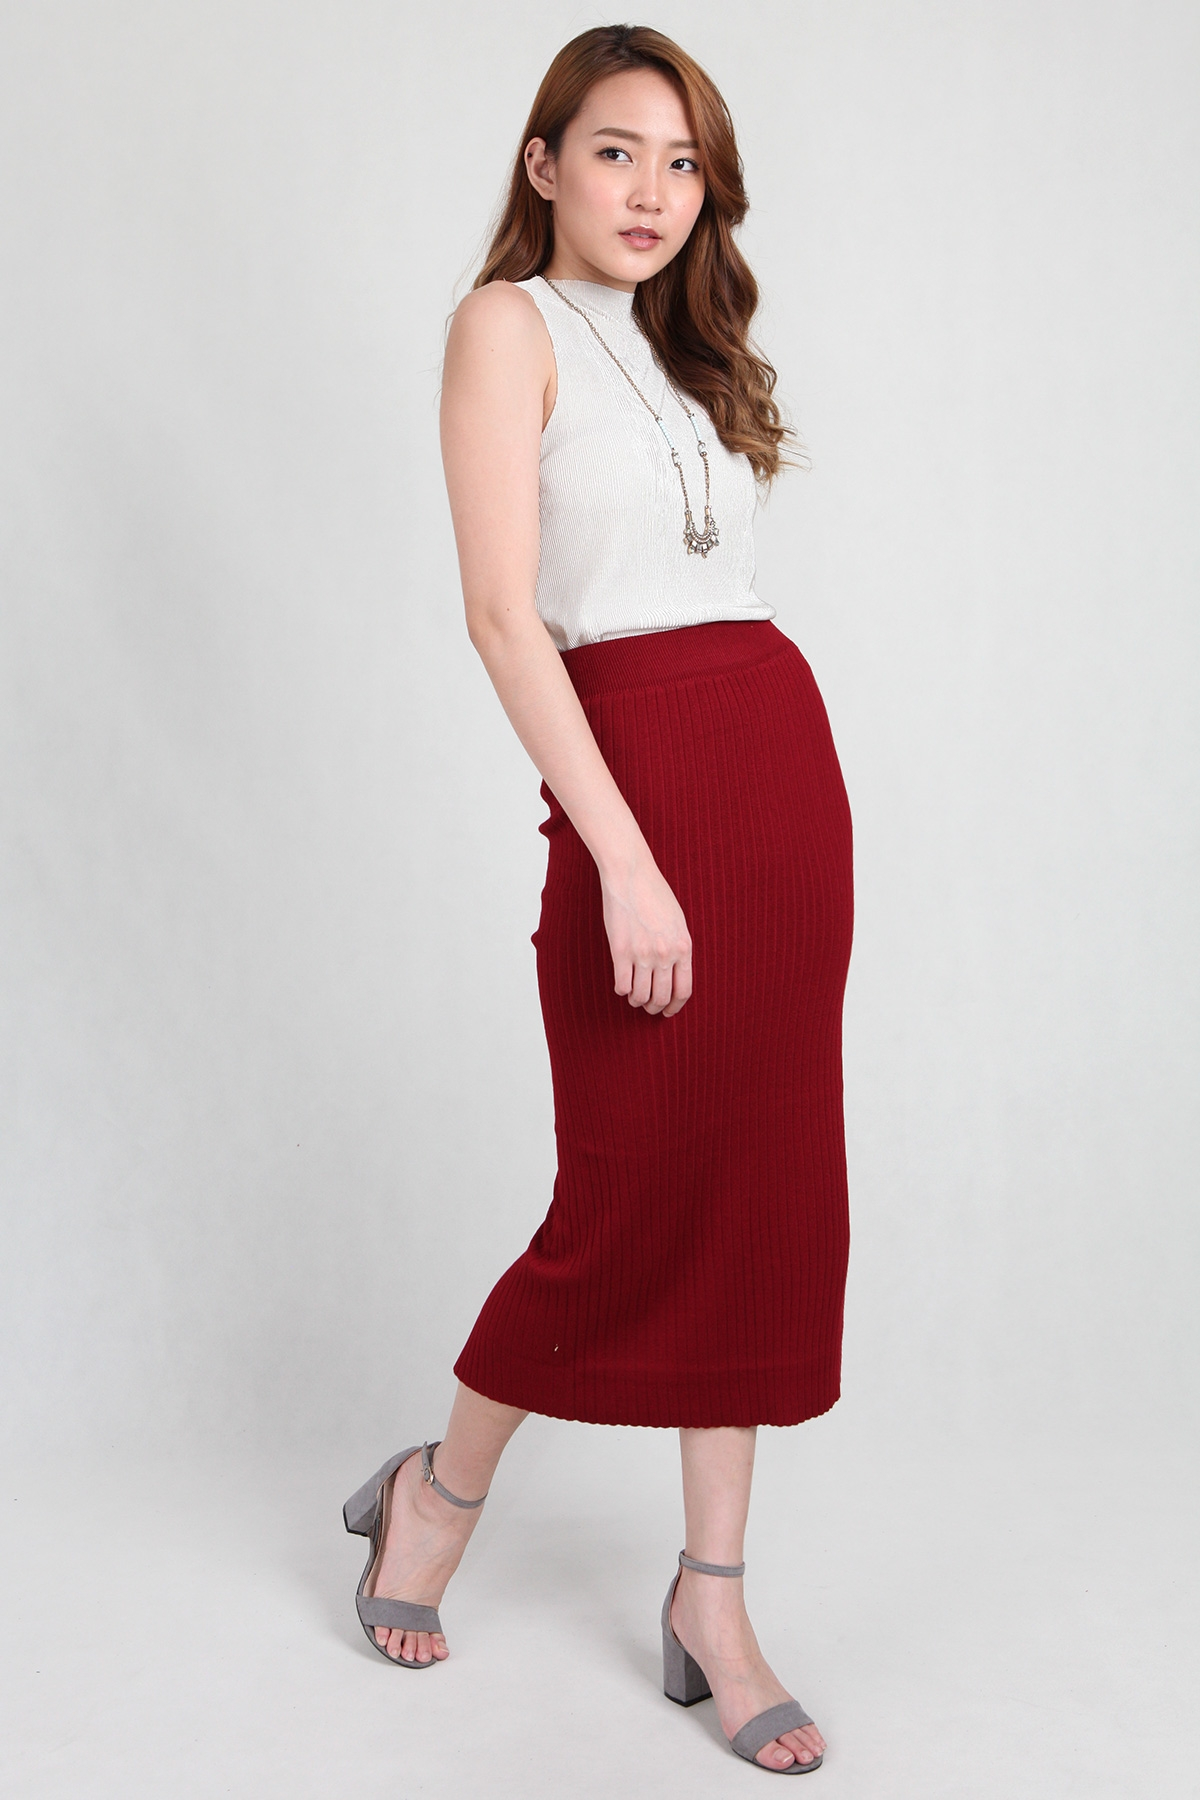 Knit Midi Skirt in Wine - PS Curate